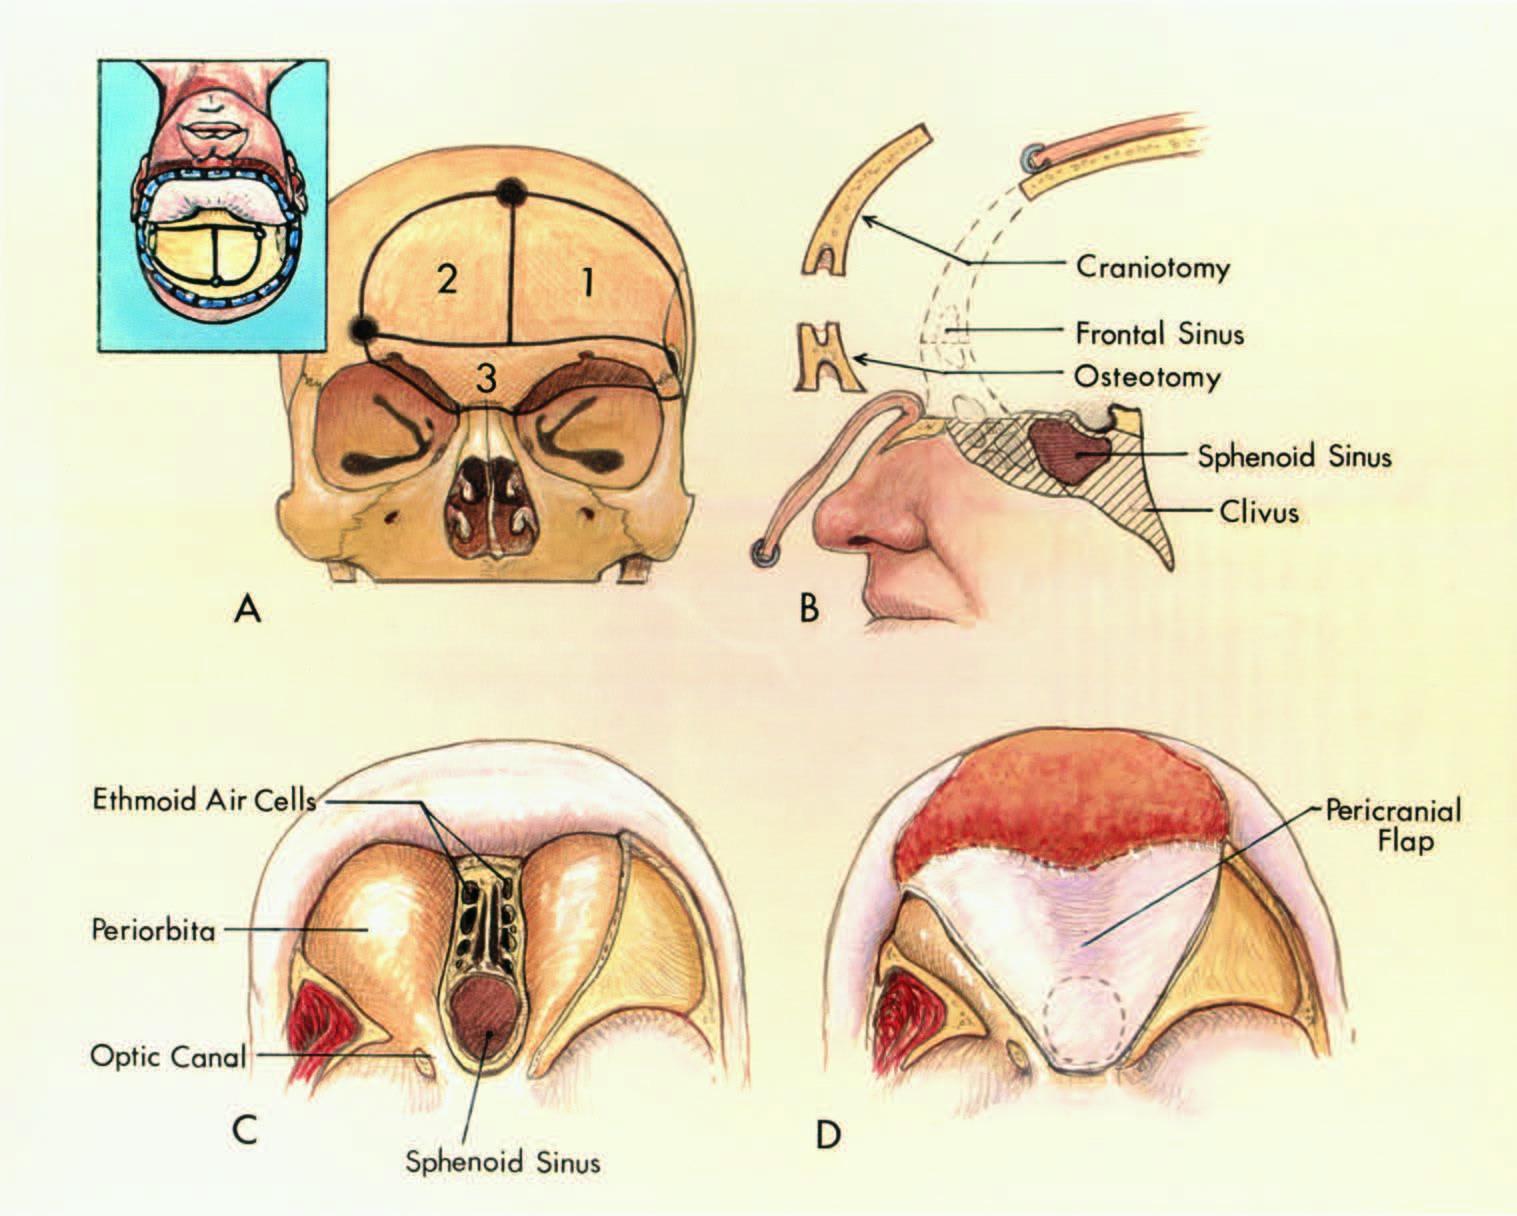 FIGURE 6.21. Extended frontal approach. A, the upper left insert shows the scalp flap and the order of the removal of the cranial bones (1, 2, 3). The third step, the orbitofrontoethmoidal osteotomy, includes both supraorbital ridges, the anterior part of the roof of the orbits, the frontal sinus, cribriform plate, and part of the ethmoid air cells in one block. B, sagittal view. The oblique lines along the skull base show the possible extent of the bone removal. The foramen magnum is reached after removing the posterior part of the floor of the anterior fossa, the ethmoid air cells, walls of the sphenoid sinus, and the clivus. C, the periorbita is exposed along both orbital roofs. The bone removal has been extended into the ethmoid air cells and the sphenoid sinus. The exposure can be extended along the clivus down to the foramen magnum. D, use of pericranial flap for reconstruction. A fat graft is placed in the ethmoid and sphenoid sinuses before reflecting the pericranial flap over them. In addition, a fat graft may also be applied to the inner side of the pericranial flap. (From, Rhoton AL Jr: Anatomical basis of surgical approaches to the region of the foramen magnum, in Dickman CA, Spetzler RF, Sonntag VKH (eds): Surgery of the Craniovertebral Junction. New York, Thieme Medical Publishers, Inc., 1998, pp 13–57 [24].)